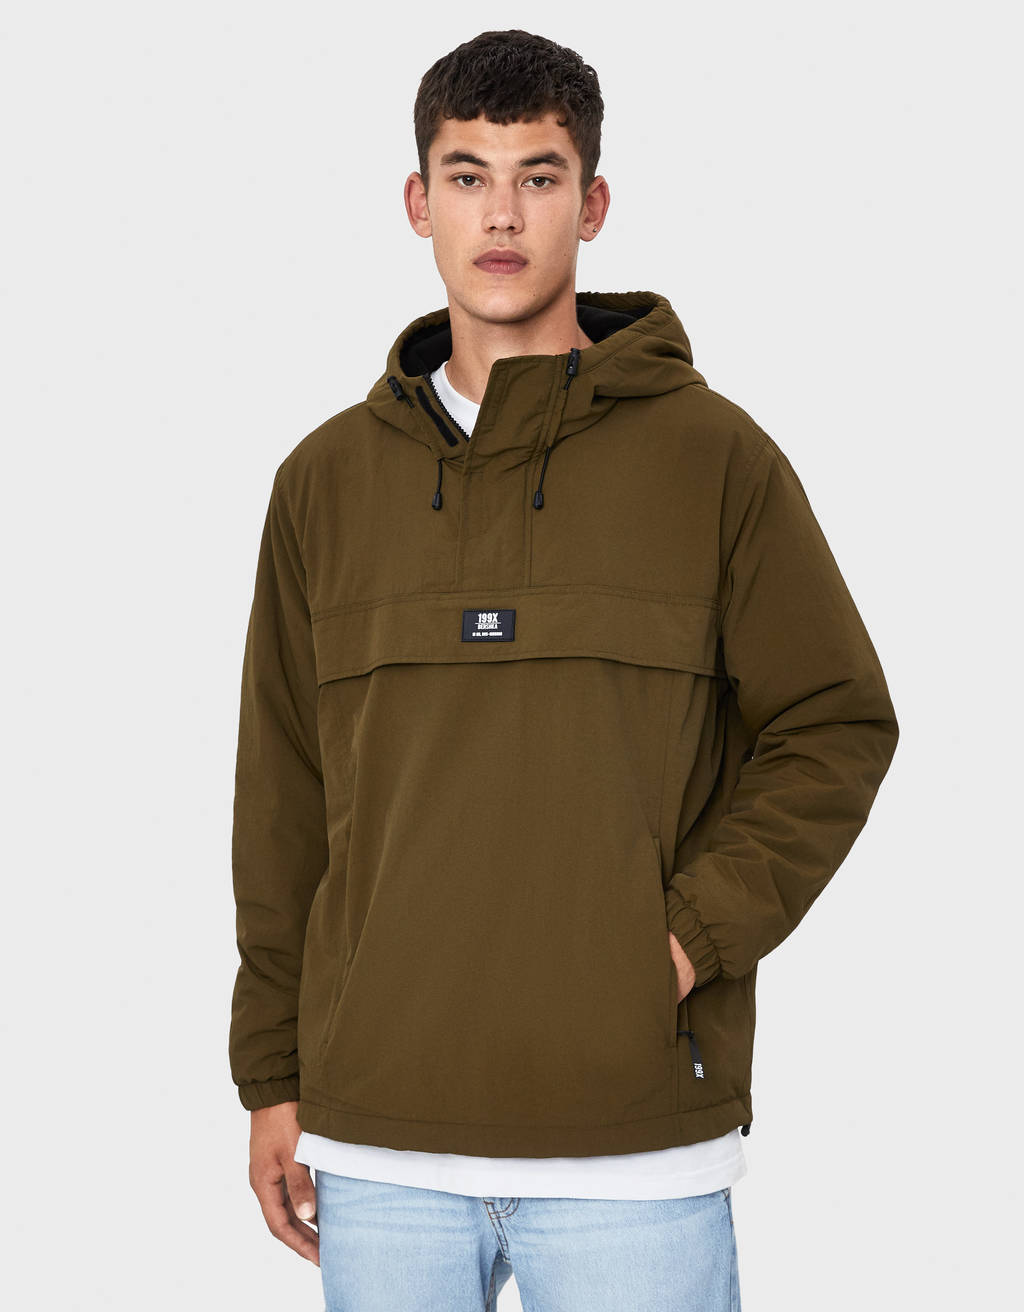 Puffer jacket with pouch pocket